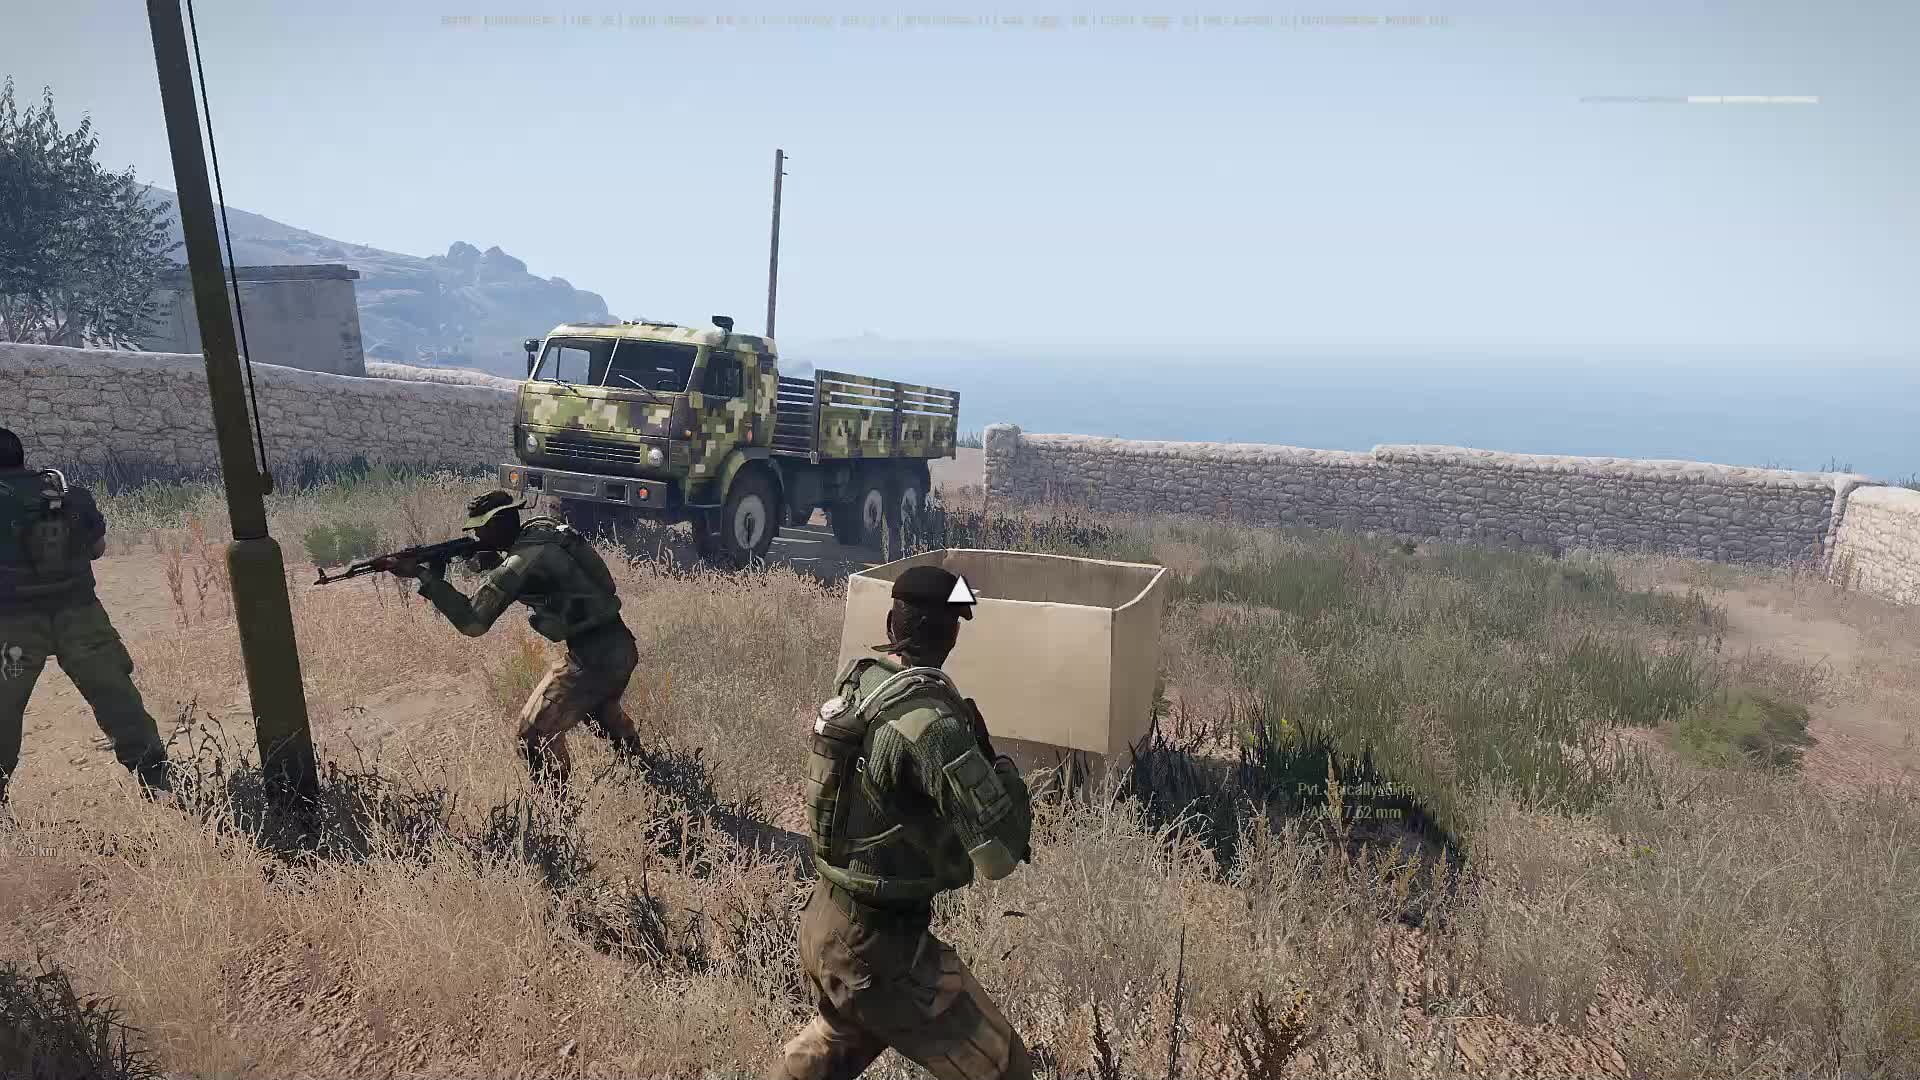 Arma3, Guerrilla's test alternate vehicle transportation 2018 colourised.  GIFs